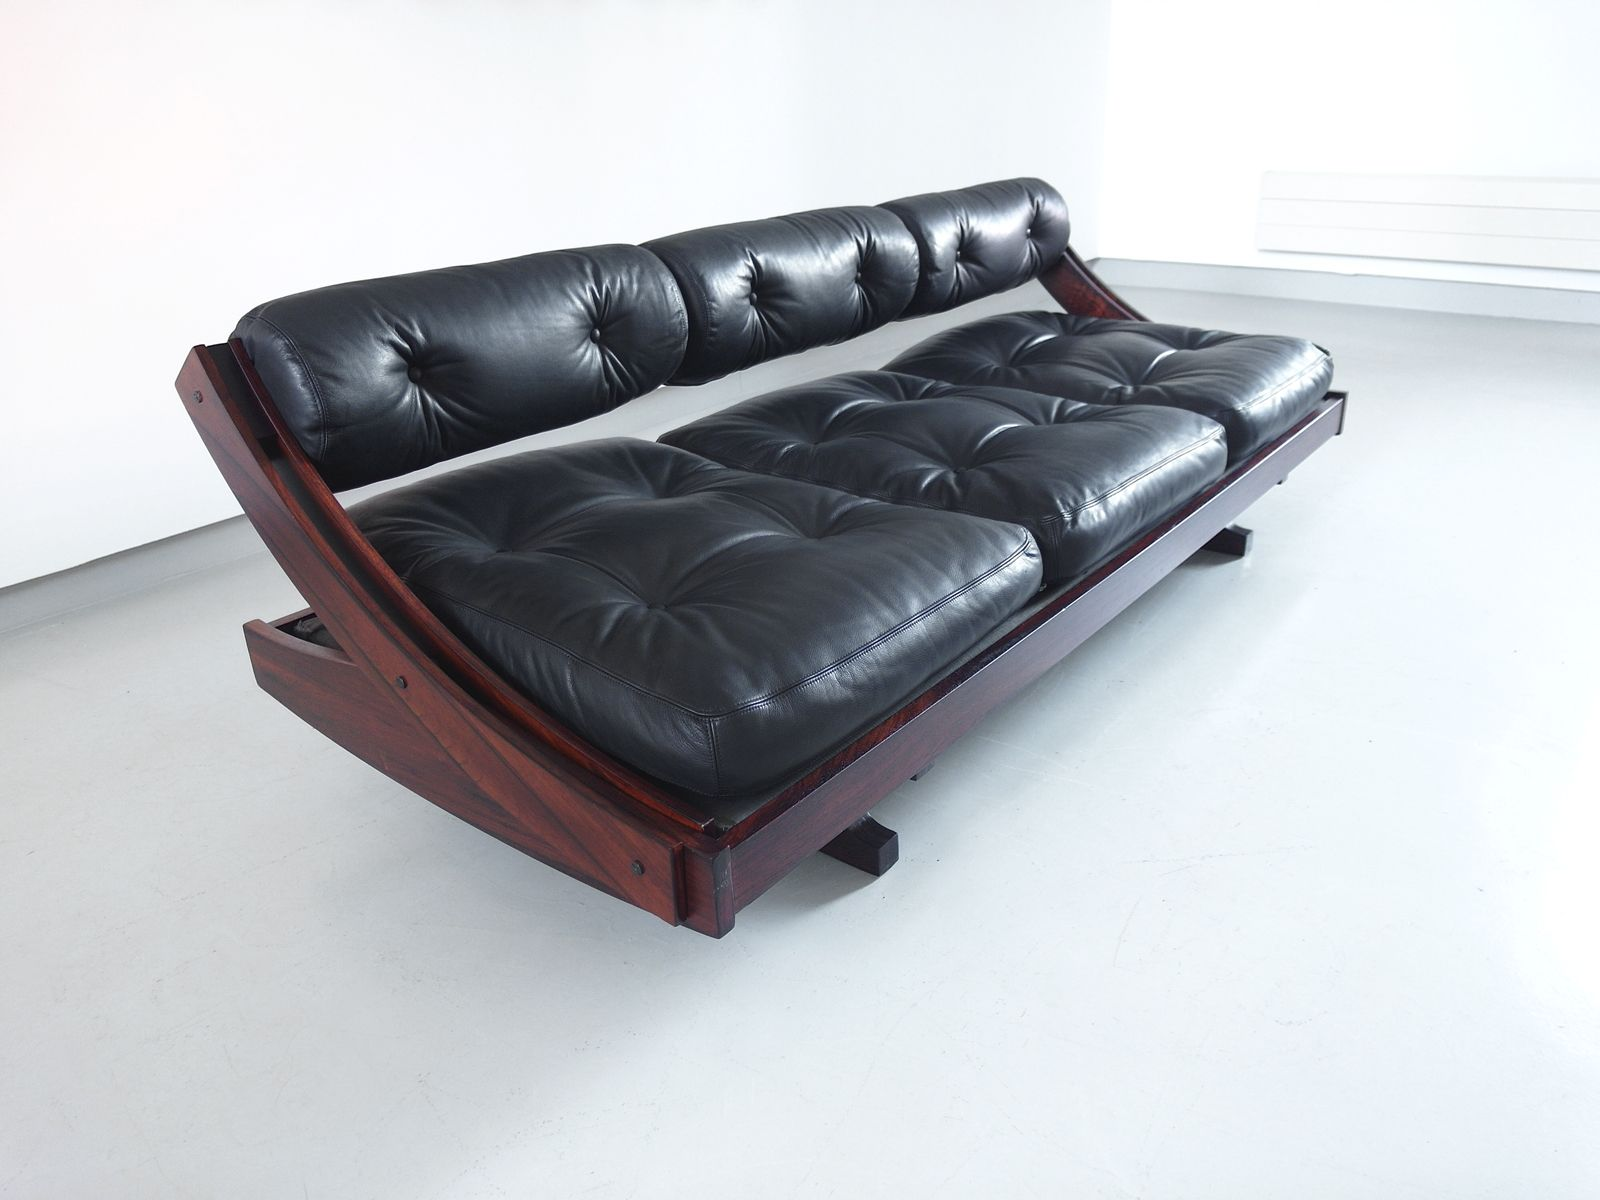 vintage modell gs 195 schlafsofa aus schwarzem leder von gianni songia f r sormani bei pamono kaufen. Black Bedroom Furniture Sets. Home Design Ideas